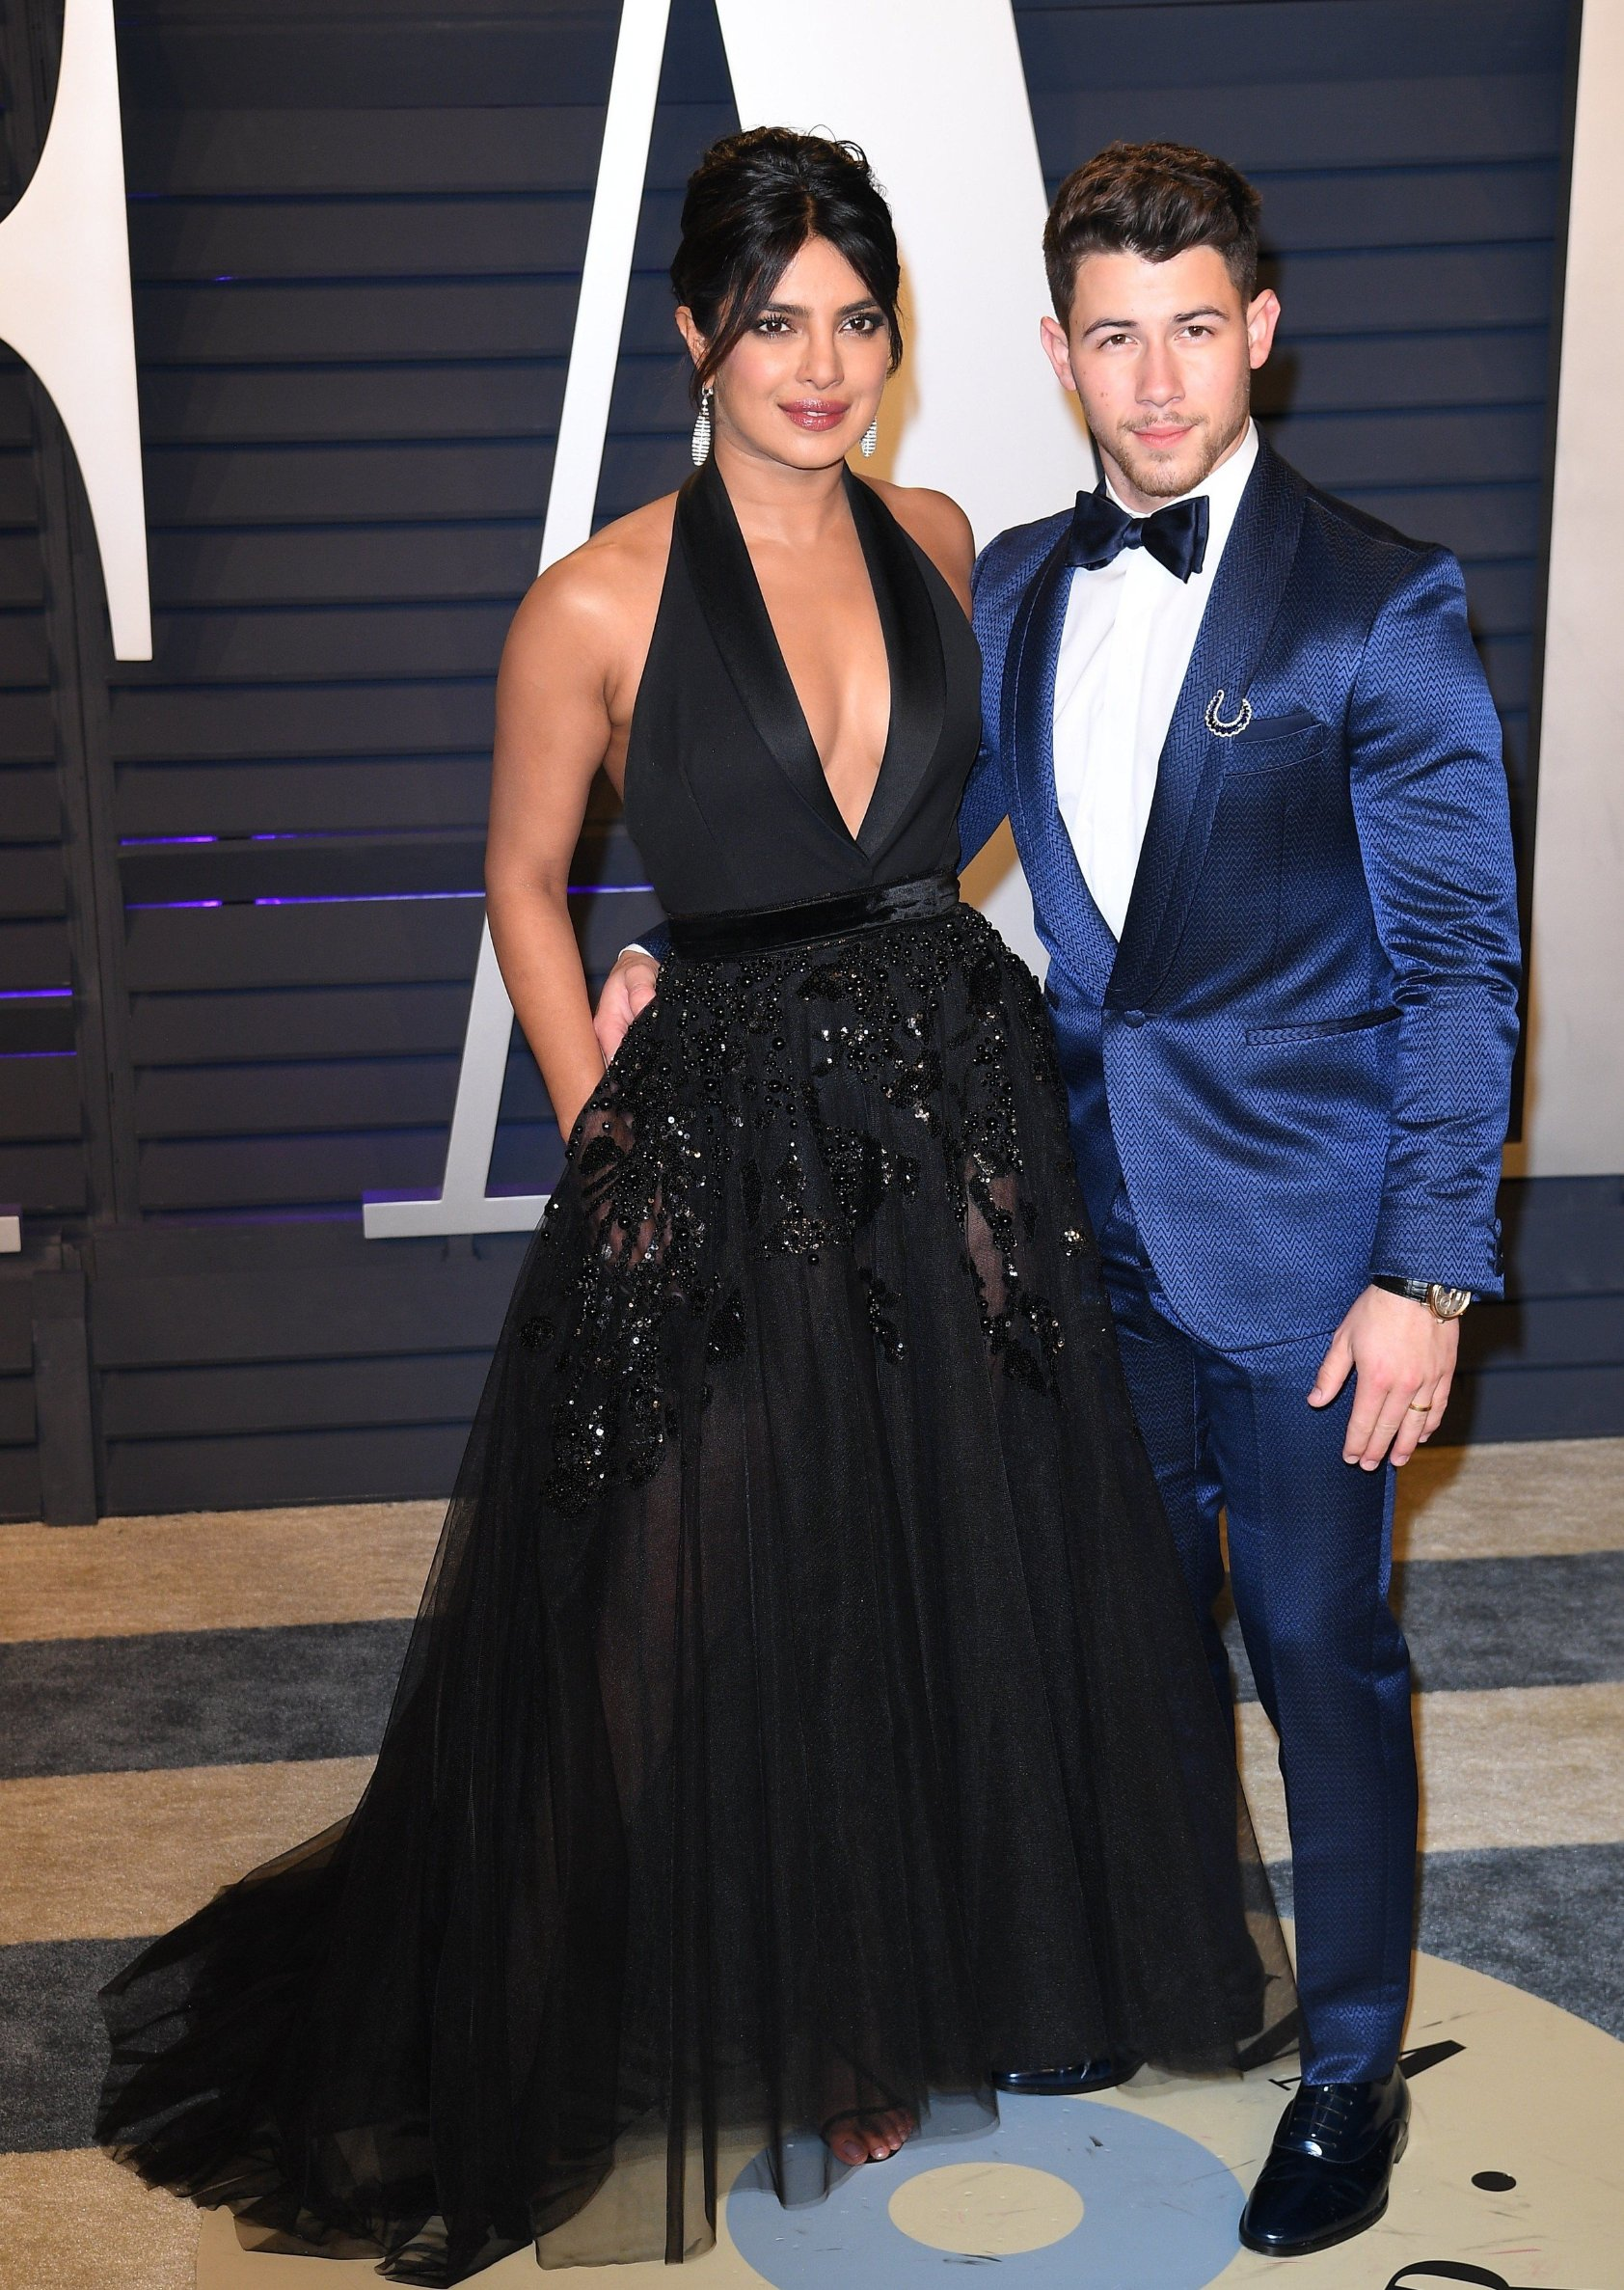 Nick Jonas and Priyanka Chopra attending the 2019 Vanity Fair Oscar Party hosted by editor Radhika Jones held at the Wallis Annenberg Center for the Performing Arts on February 24, 2019 in Los Angeles, CA, USA., Image: 415794317, License: Rights-managed, Restrictions: , Model Release: no, Credit line: Profimedia, Abaca Press